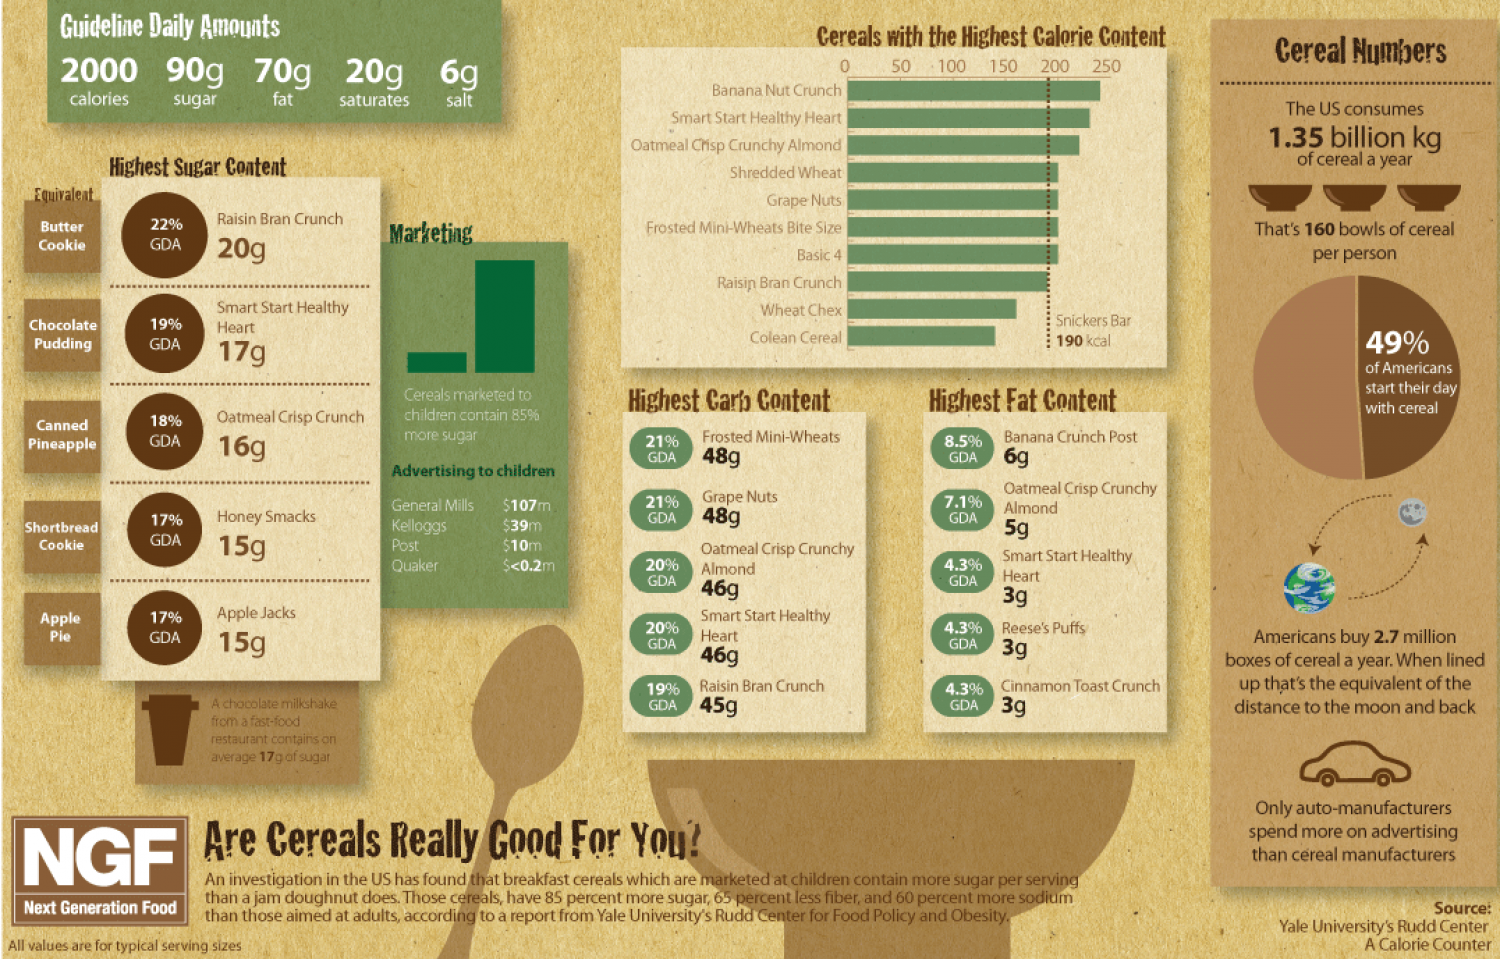 Are Cereals Really Good For You? Infographic